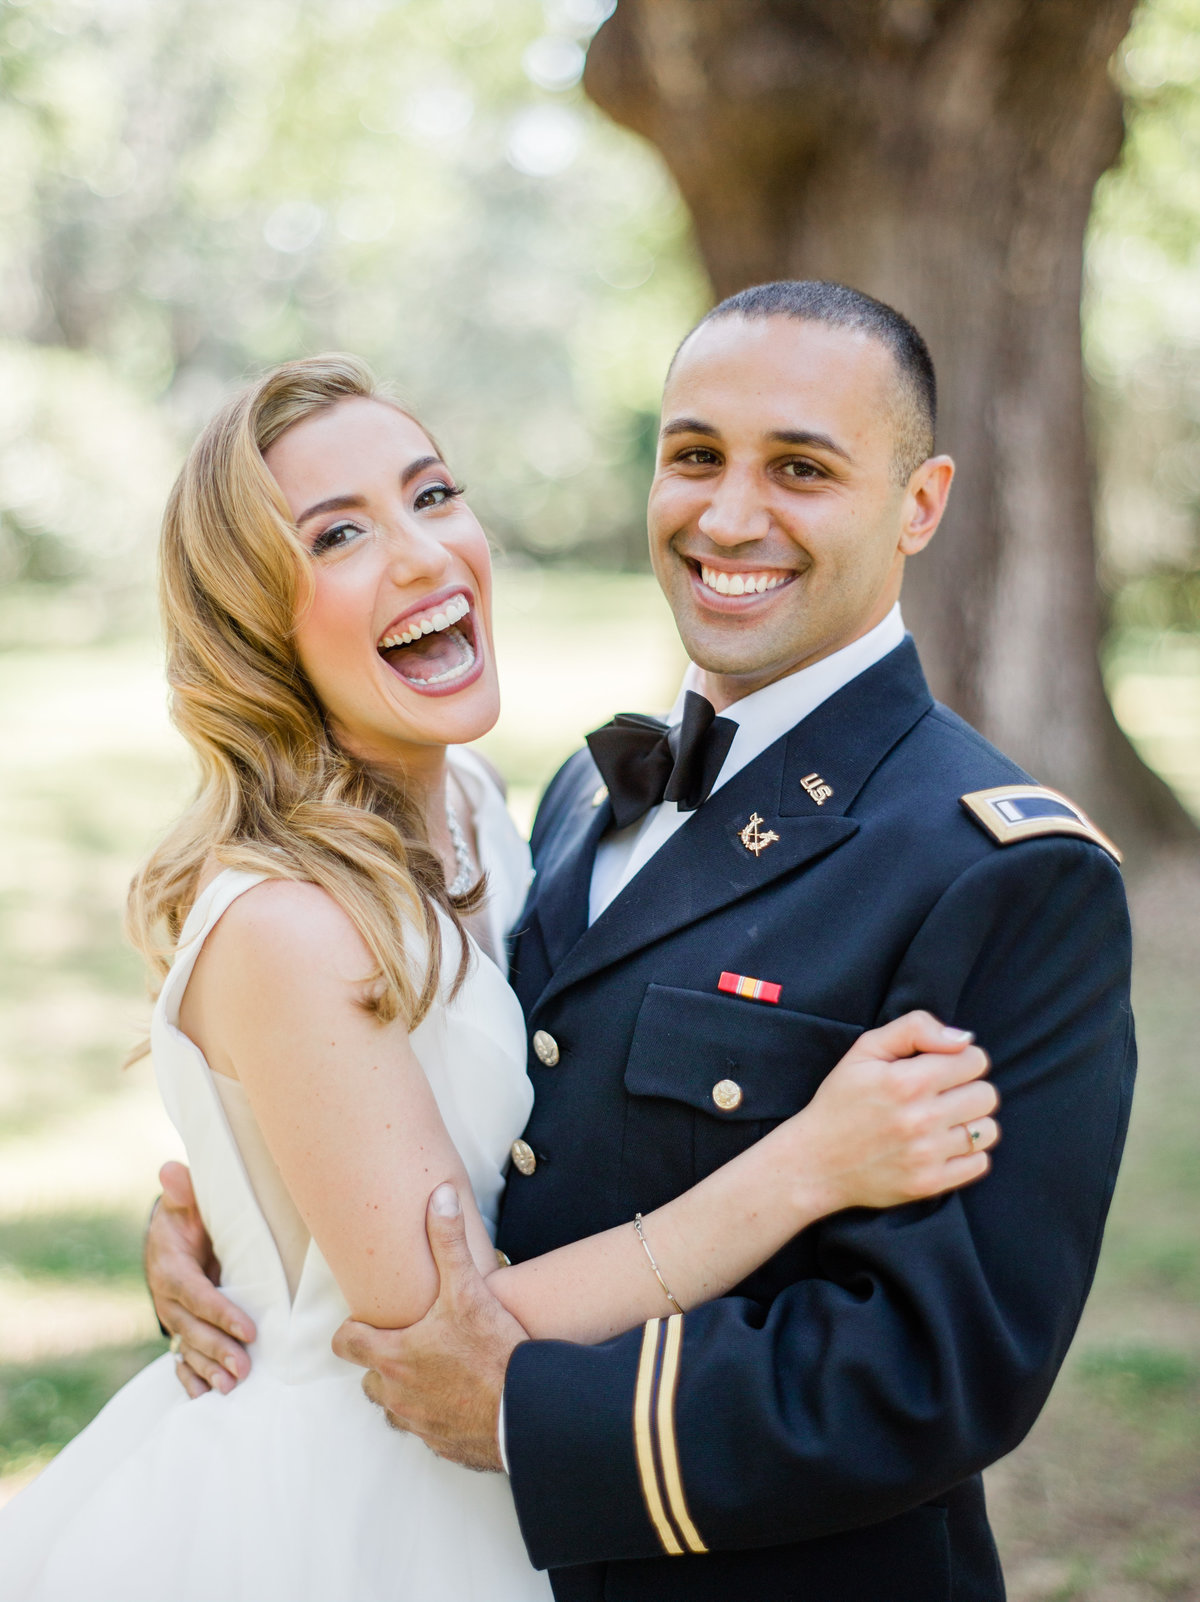 Arielle-and-Anthony-Wedding-by-Philip-Casey-0222